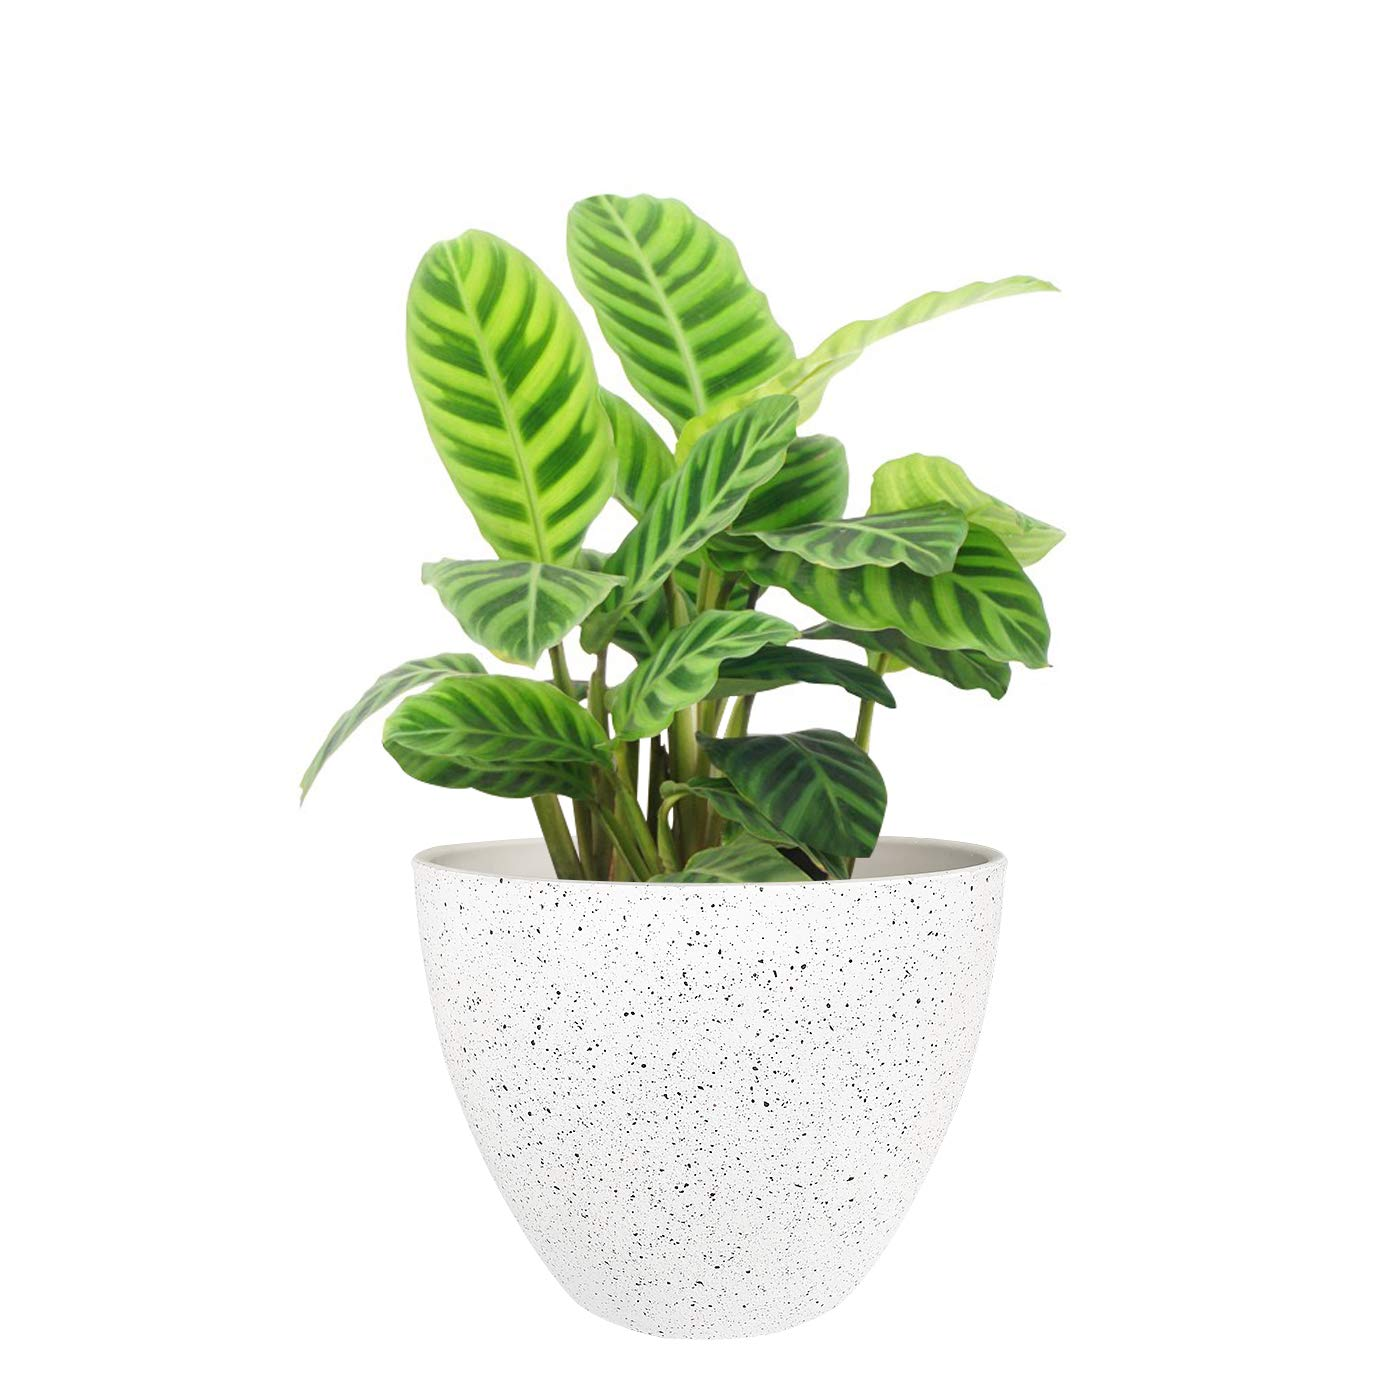 B07R4LMNRC Flower Pots Outdoor Indoor Garden Planters, Resin Plant Containers with Drain Hole, Speckled White (8.6 inches, 1 Pack) 717DHBLs22L